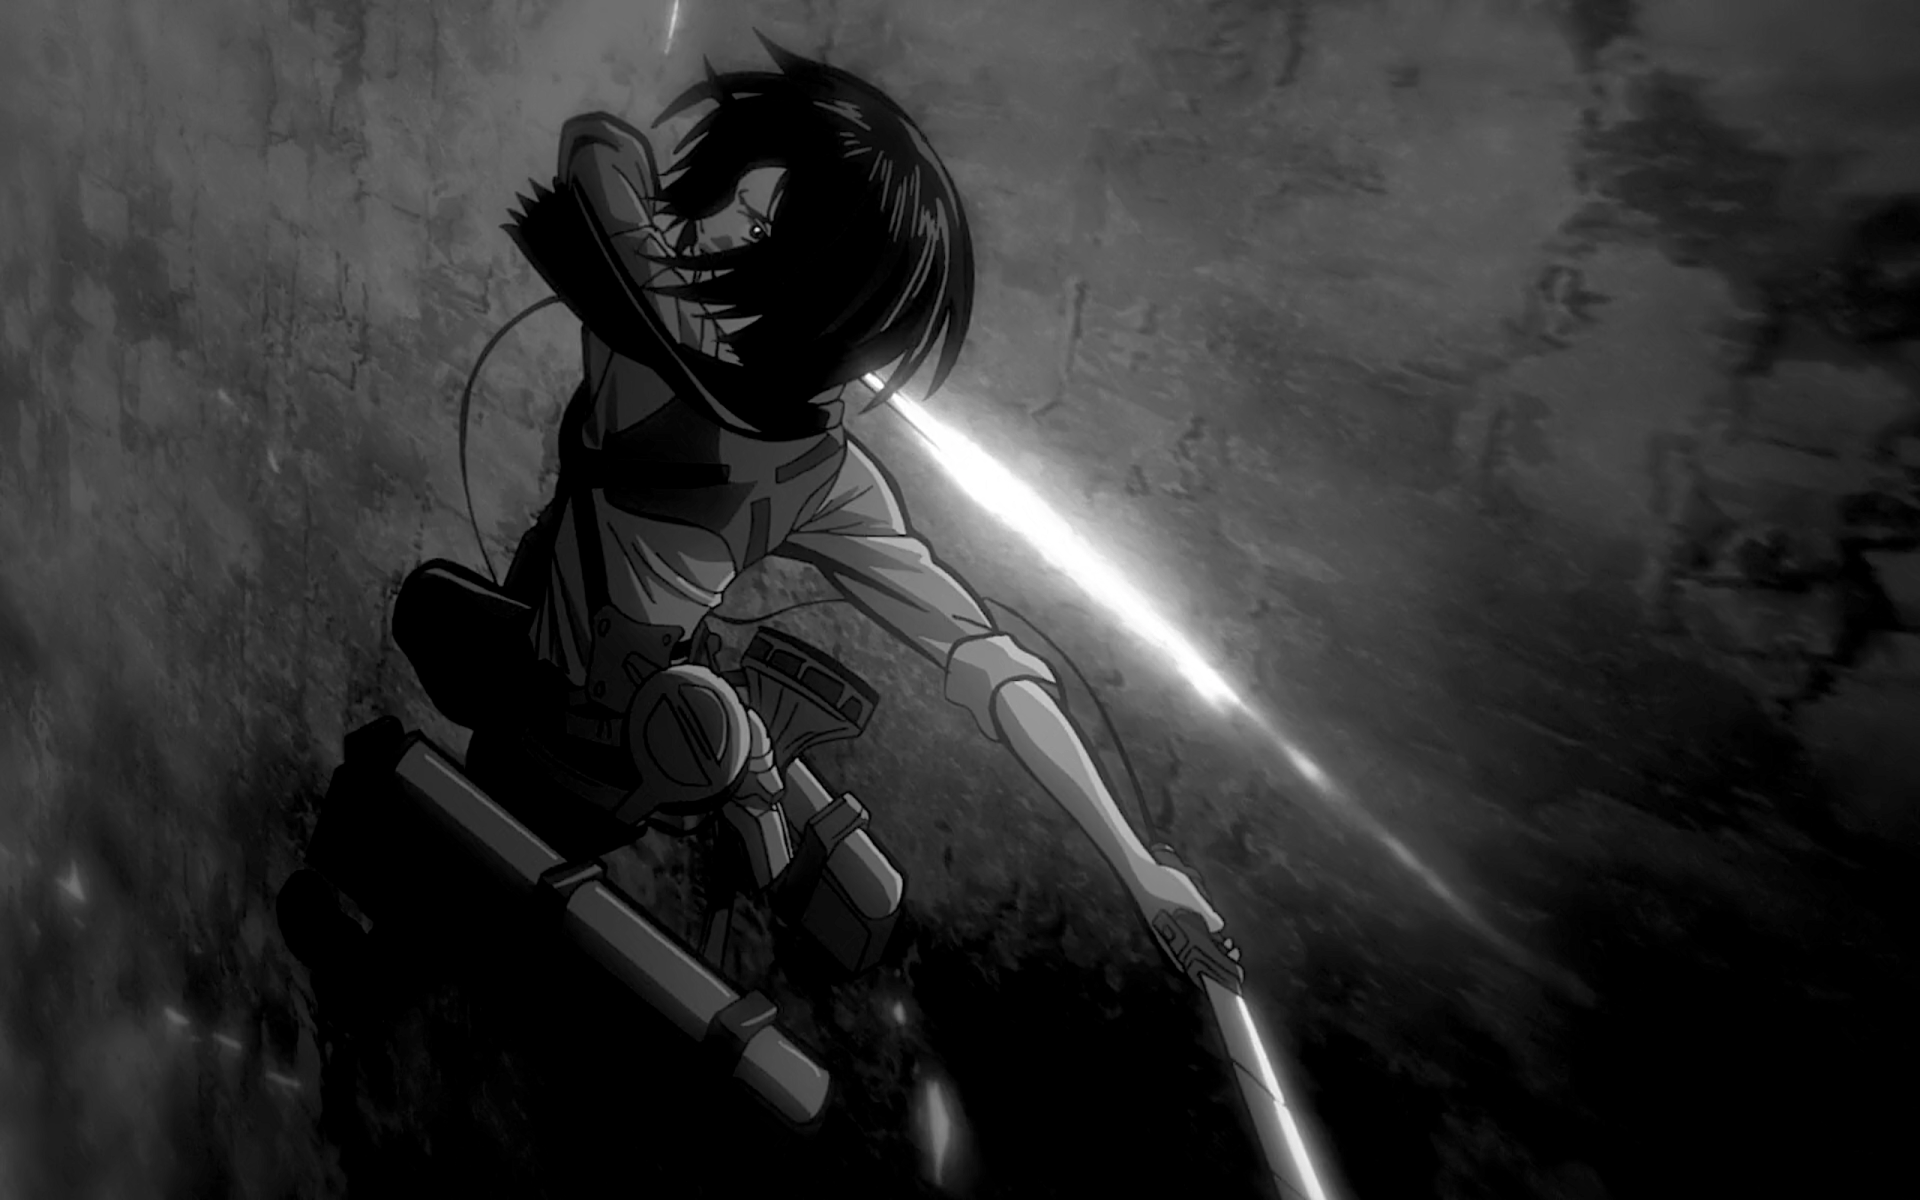 aesthetic attack on titan wallpapers